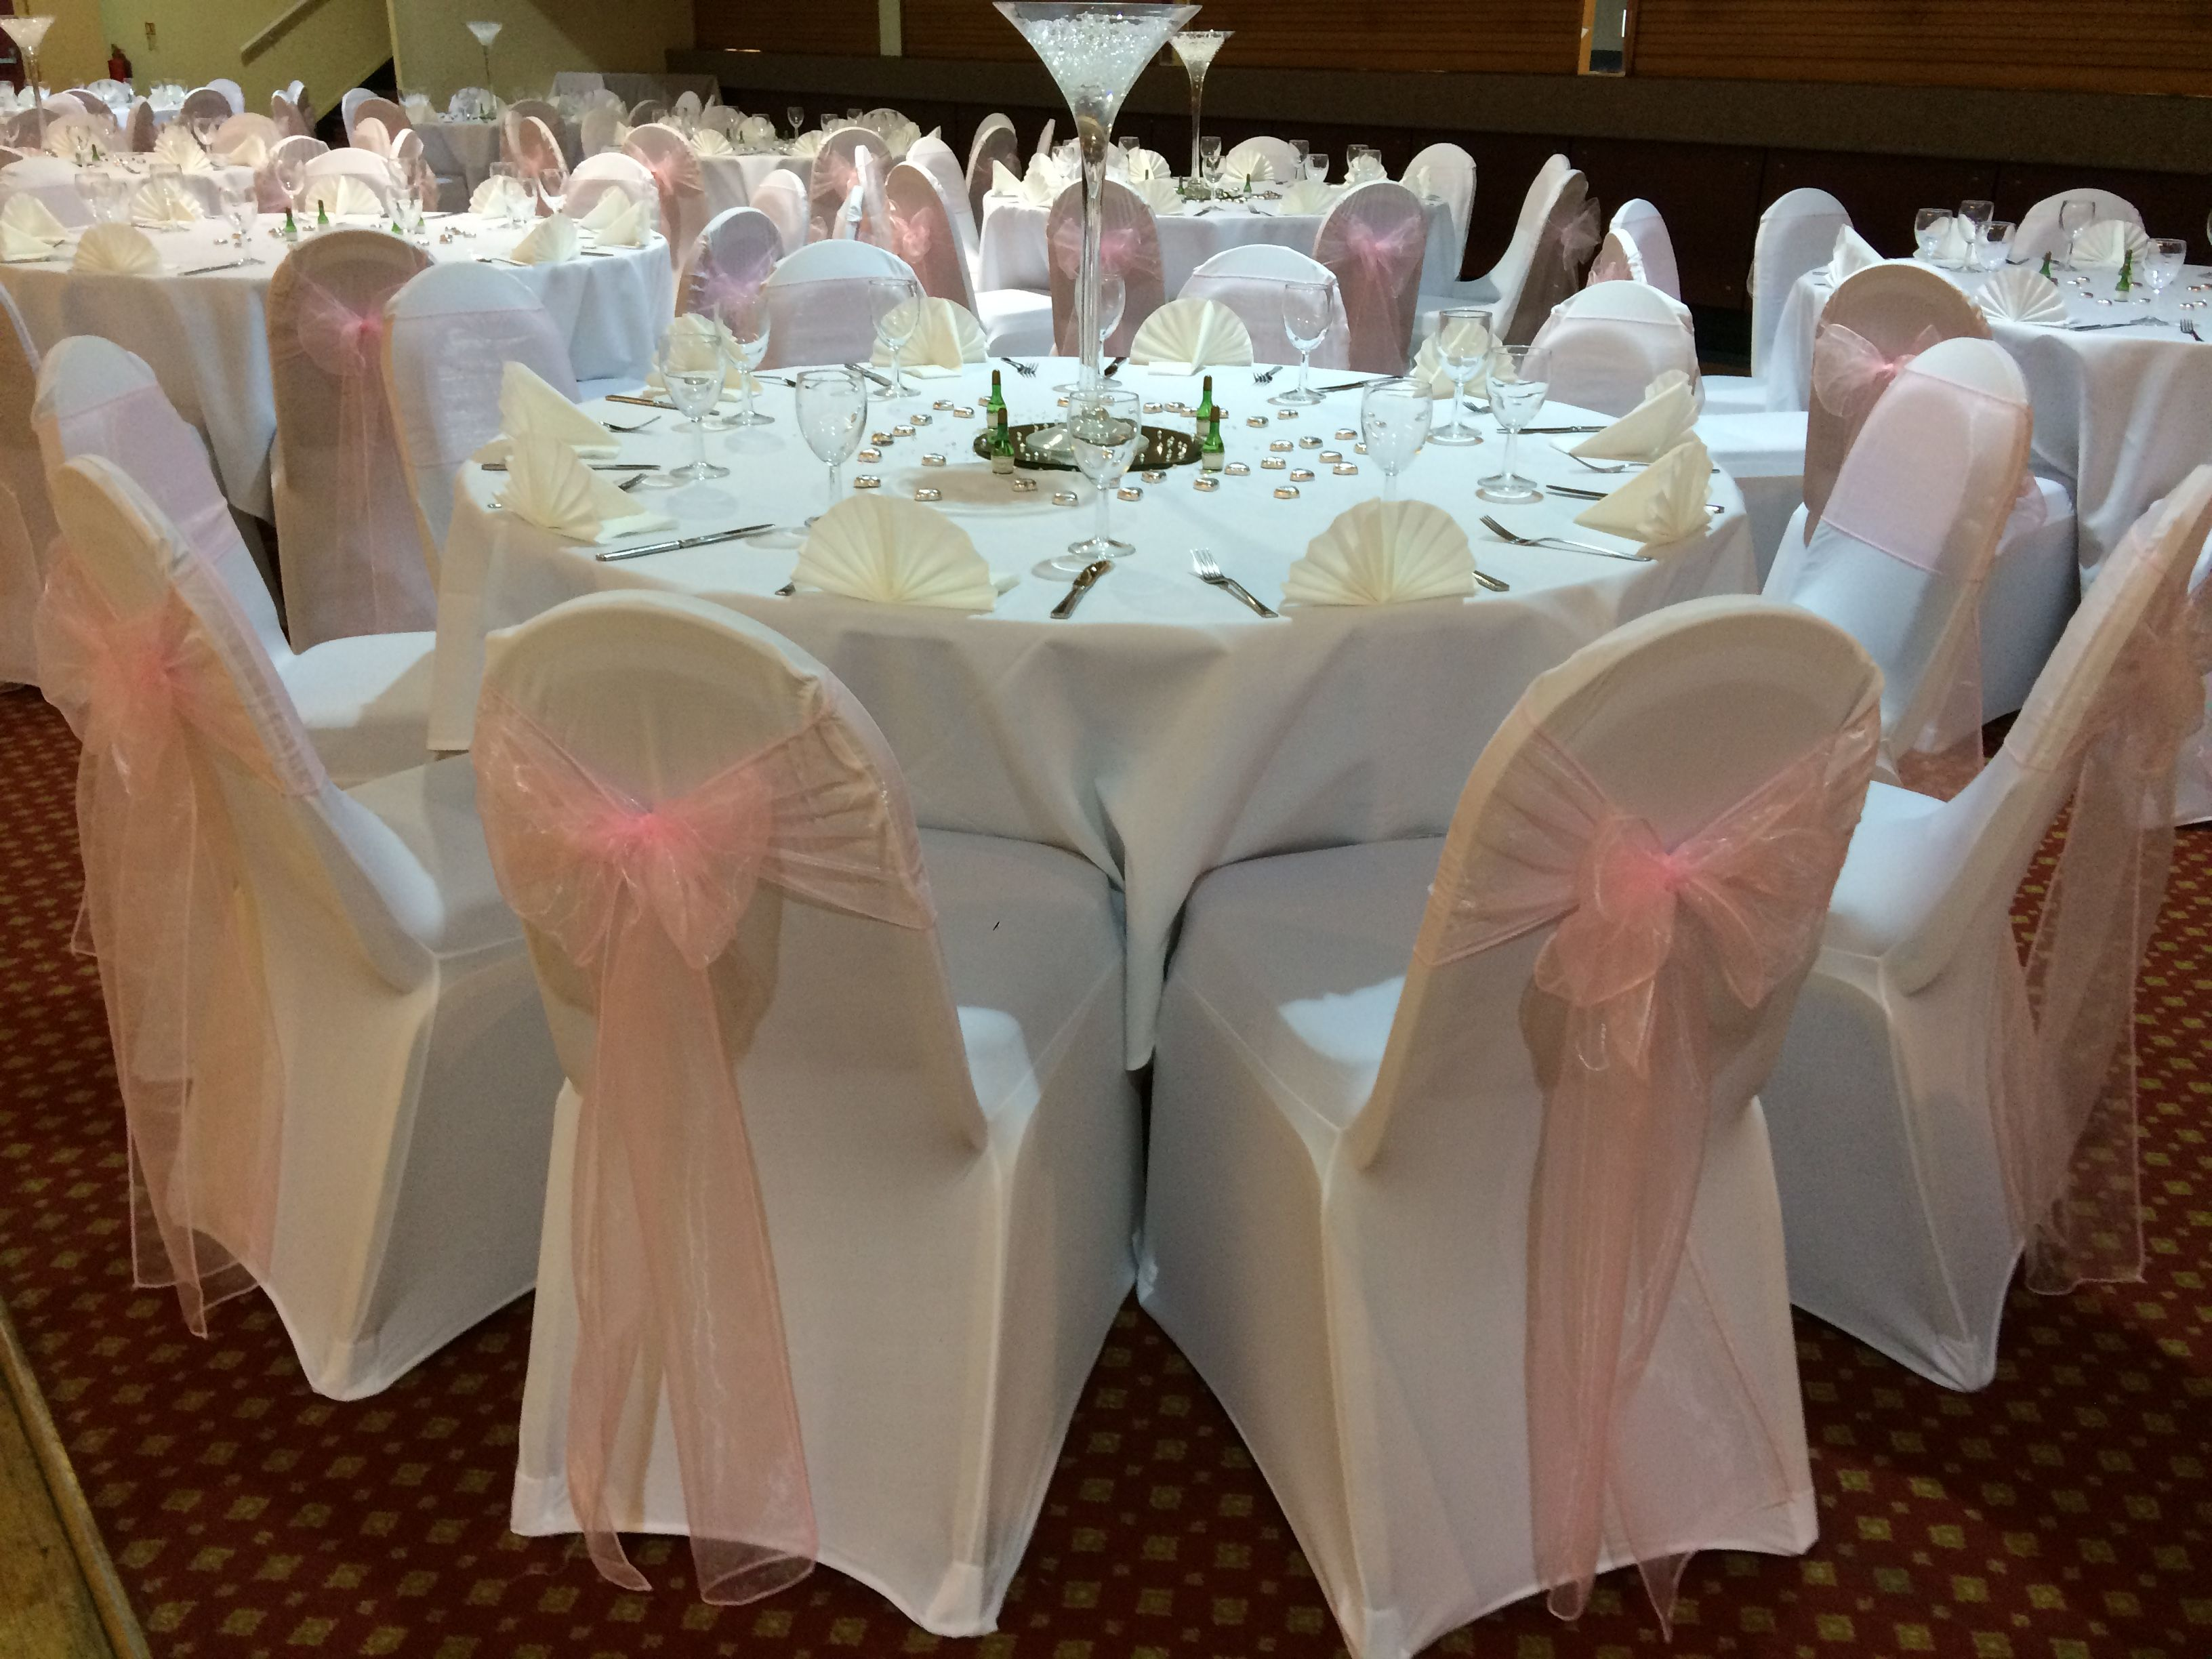 Blush Chair Sashes Heavy Duty Fishing Uk White Covers With Pale Pink Organza At A